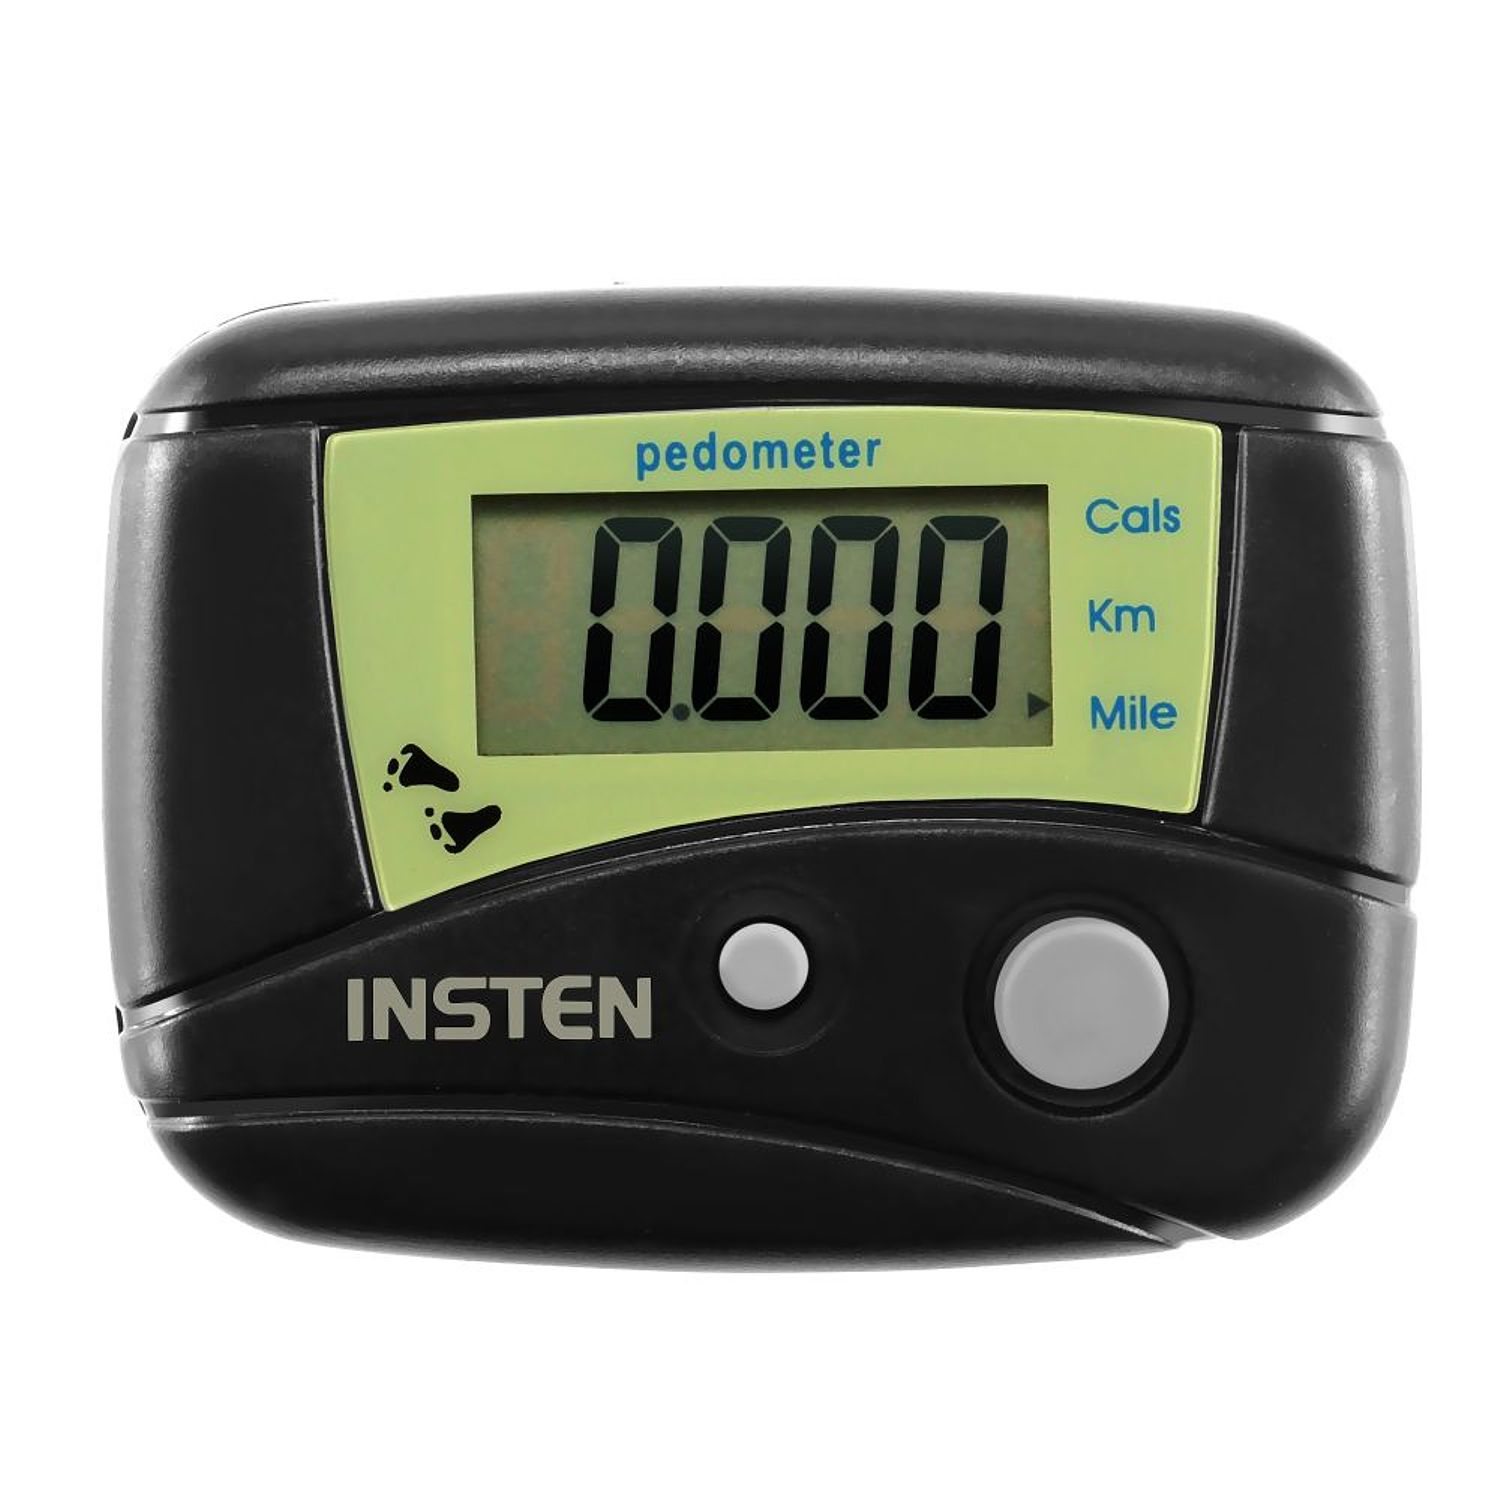 Insten Mini Digital Fitness Pedometer Calorie Step Distance Ran Walked Biked Counter (with belt clip)